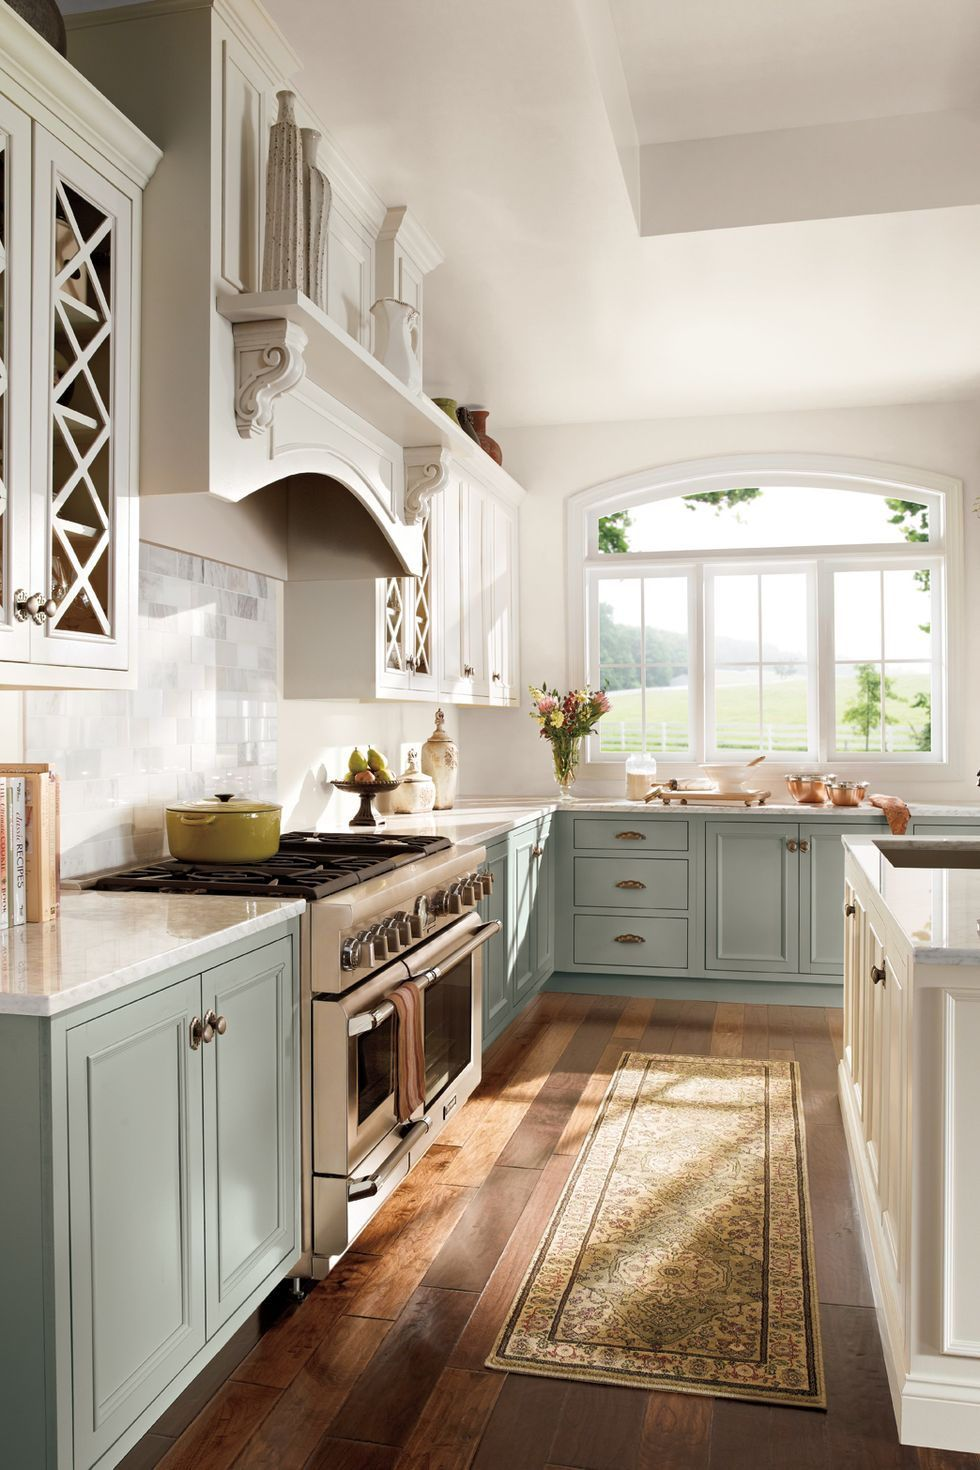 90 kitchens that ll make you want to redo yours in 2020 on kitchens that ll make you want to redo yours id=24320